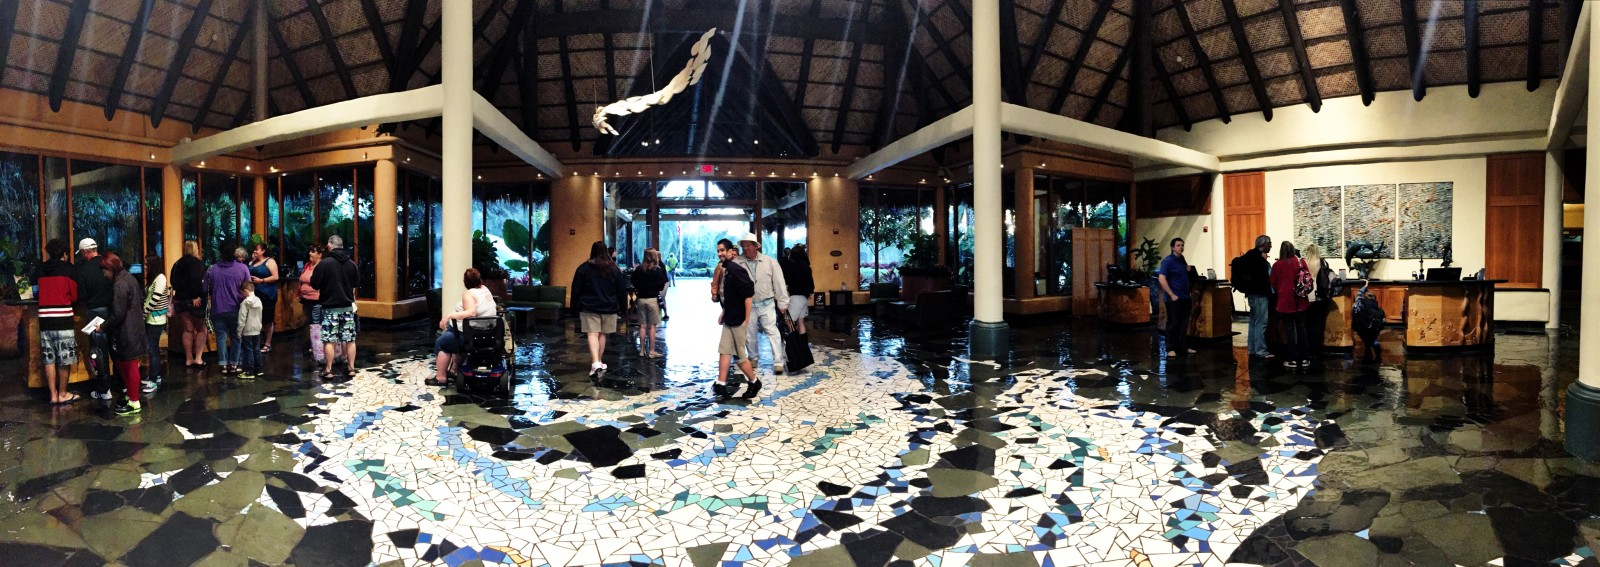 Discovery Cove Lobby Panorama